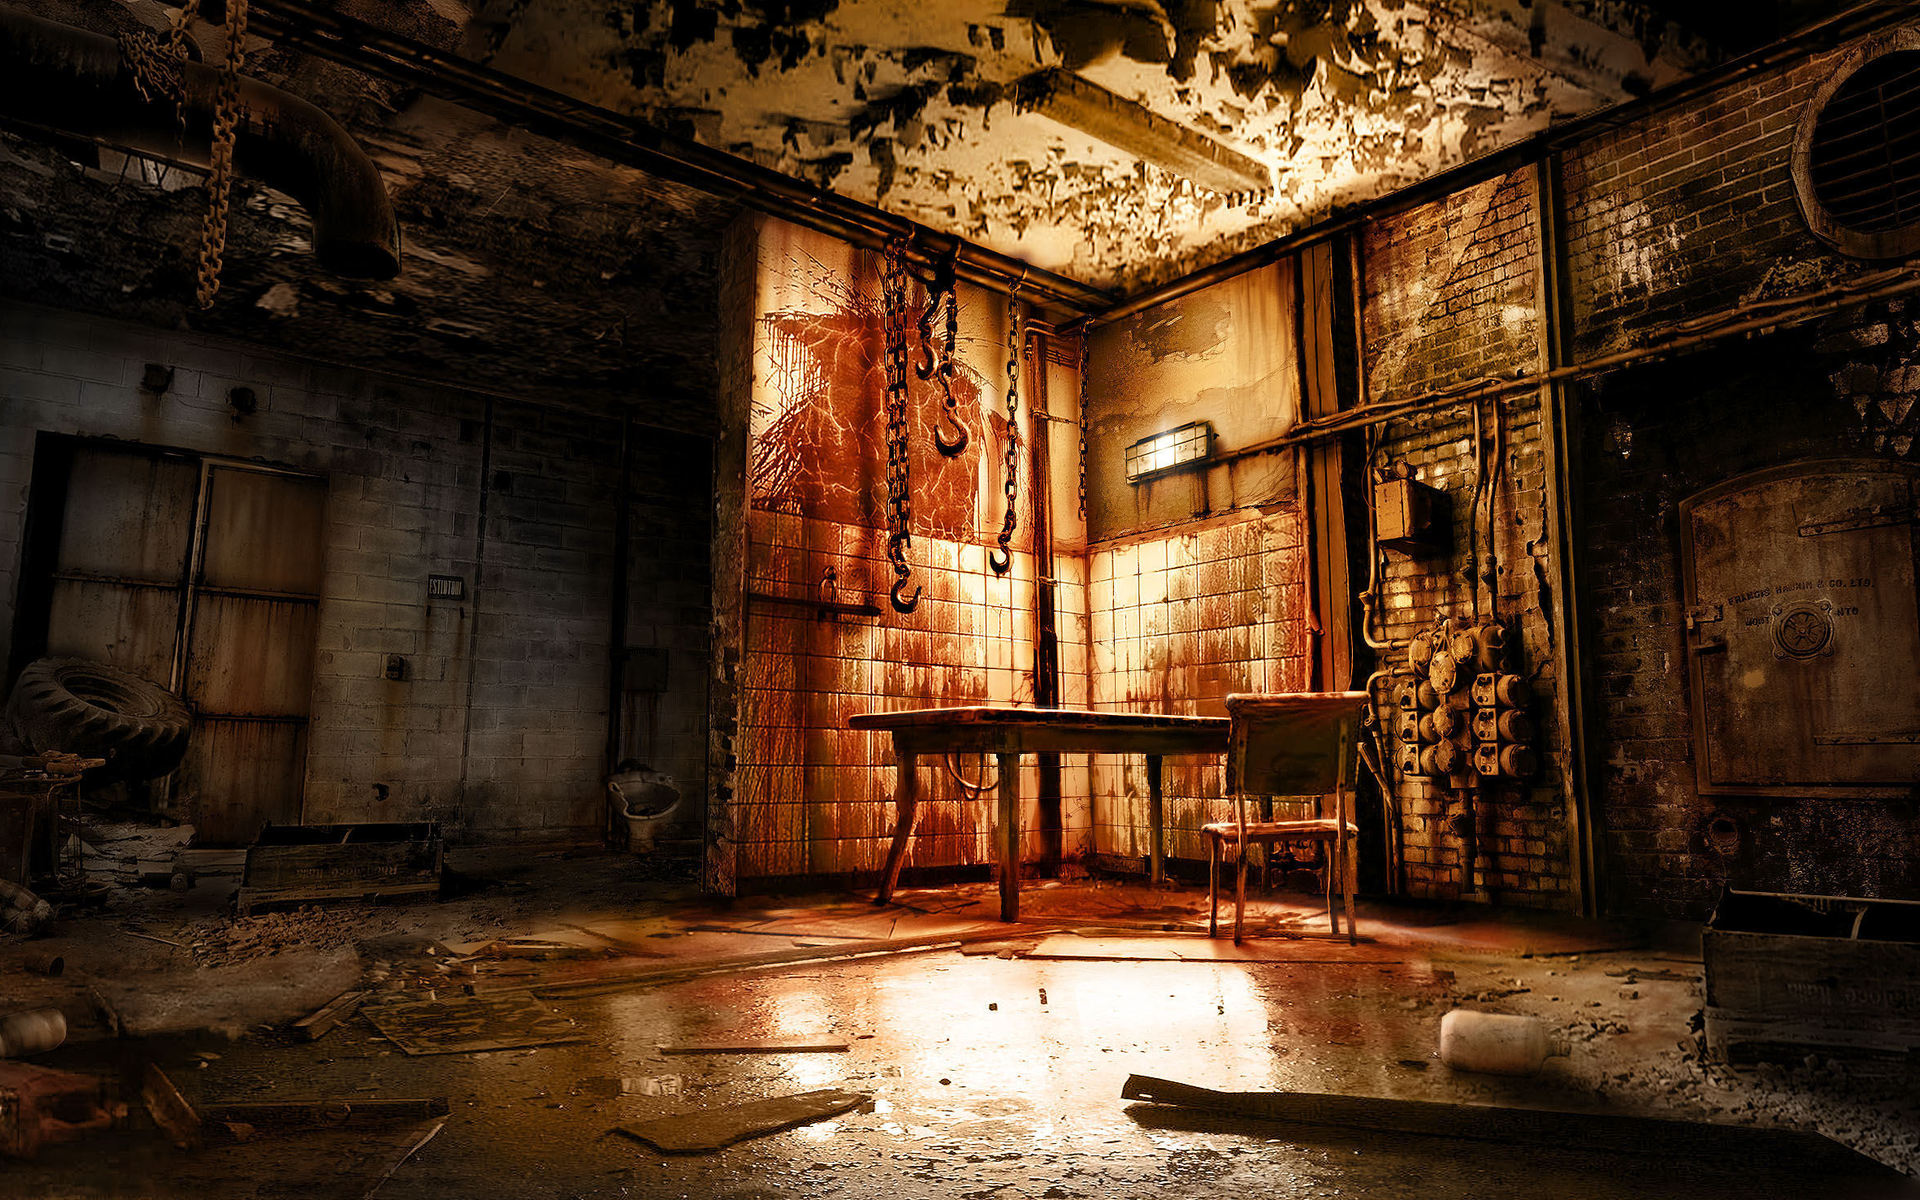 Alone in the dark horror scary creepy spooky blood room macabre reflection gross evil rust table - Hd room background images ...